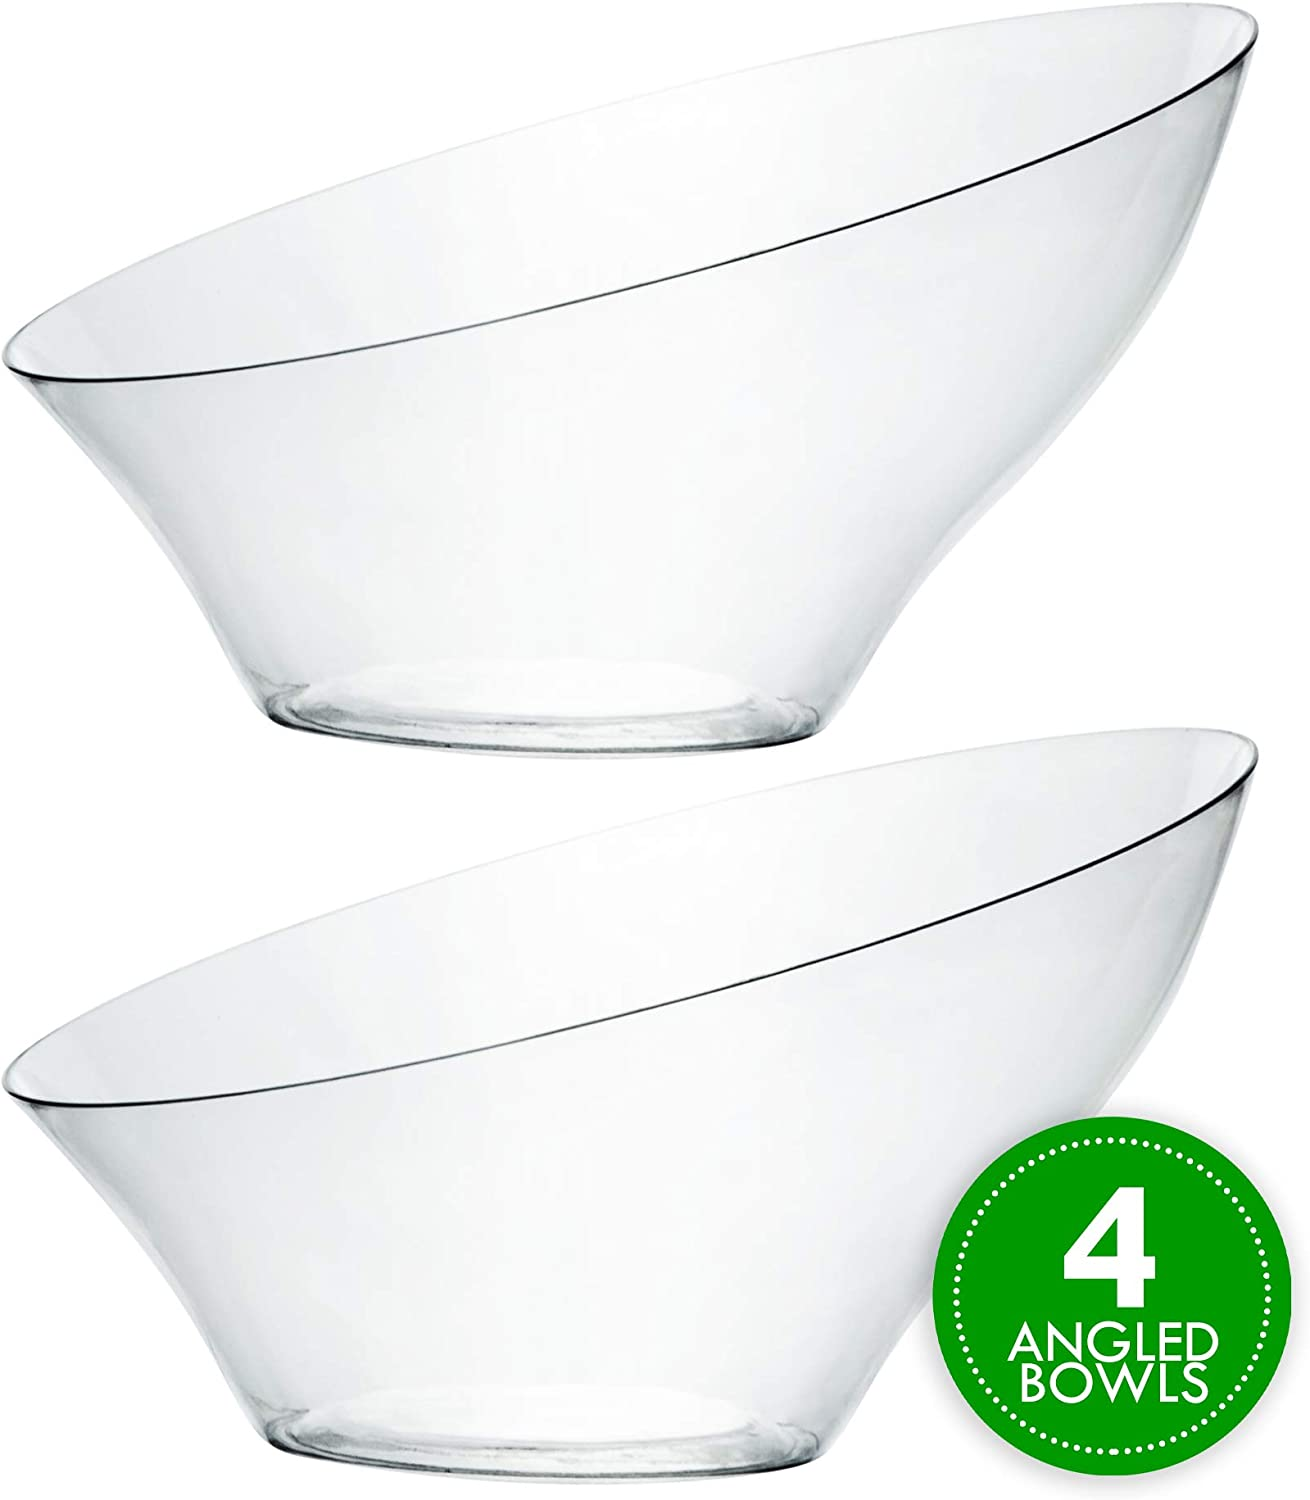 Plasticpro Disposable Angled Plastic Bowls Round Medium Serving Bowl, Elegant for Party's, Snack, or Salad Bowl, Clear Pack of 4